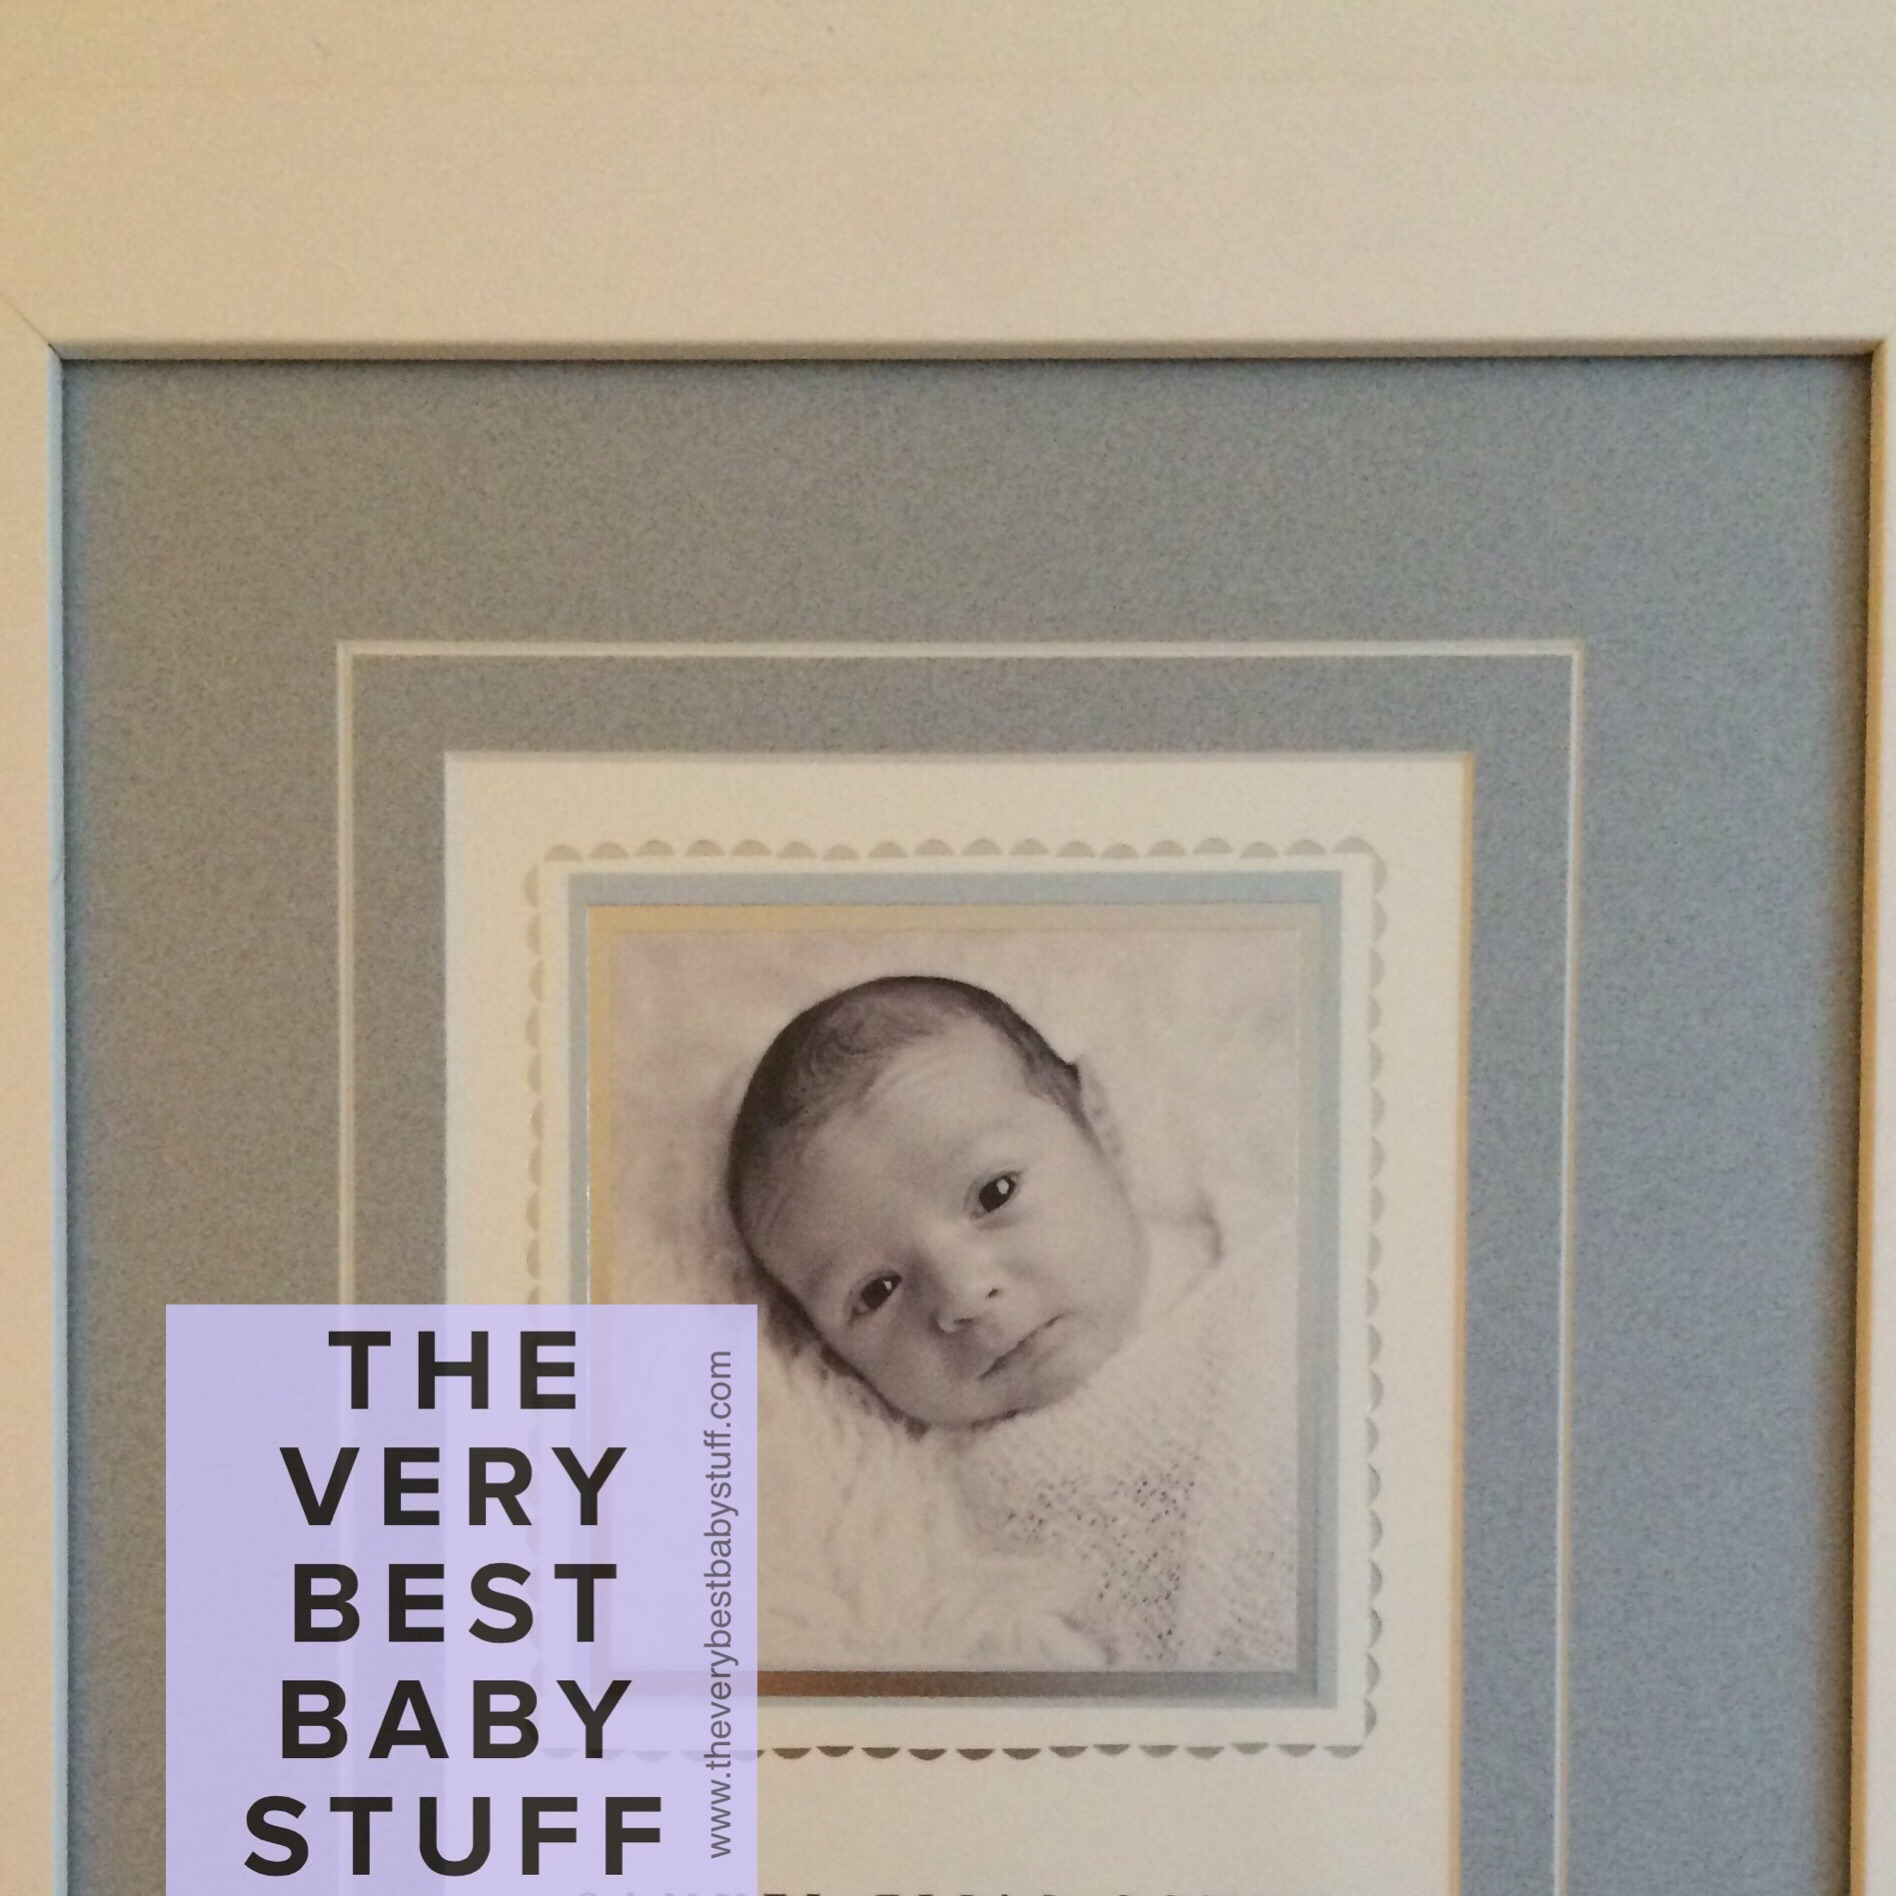 This is S's framed birth announcement. I cut off his name and other info that appeared at the bottom for privacy reasons.